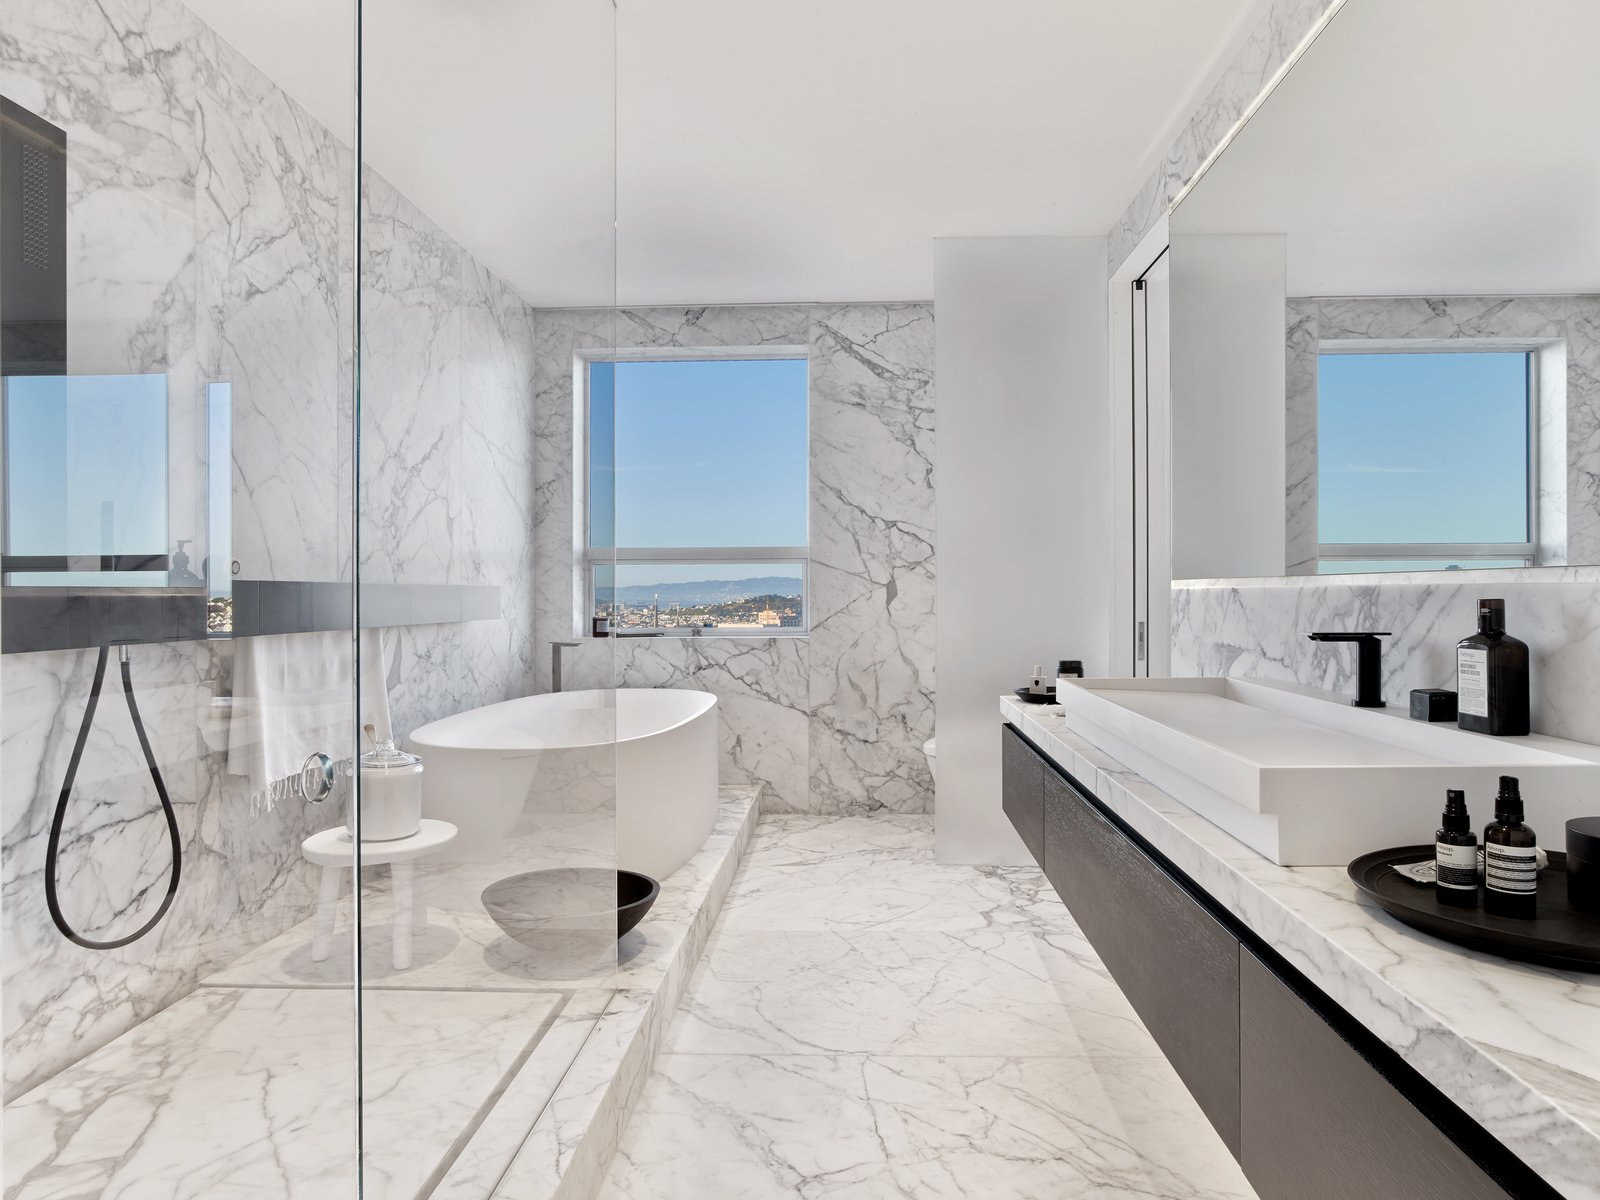 Bath Room, Marble Floor, Vessel Sink, Freestanding Tub, Marble Counter, Soaking Tub, Enclosed Shower, Corner Shower, and Marble Wall Master bath  Glen Park Residence by CCS ARCHITECTURE